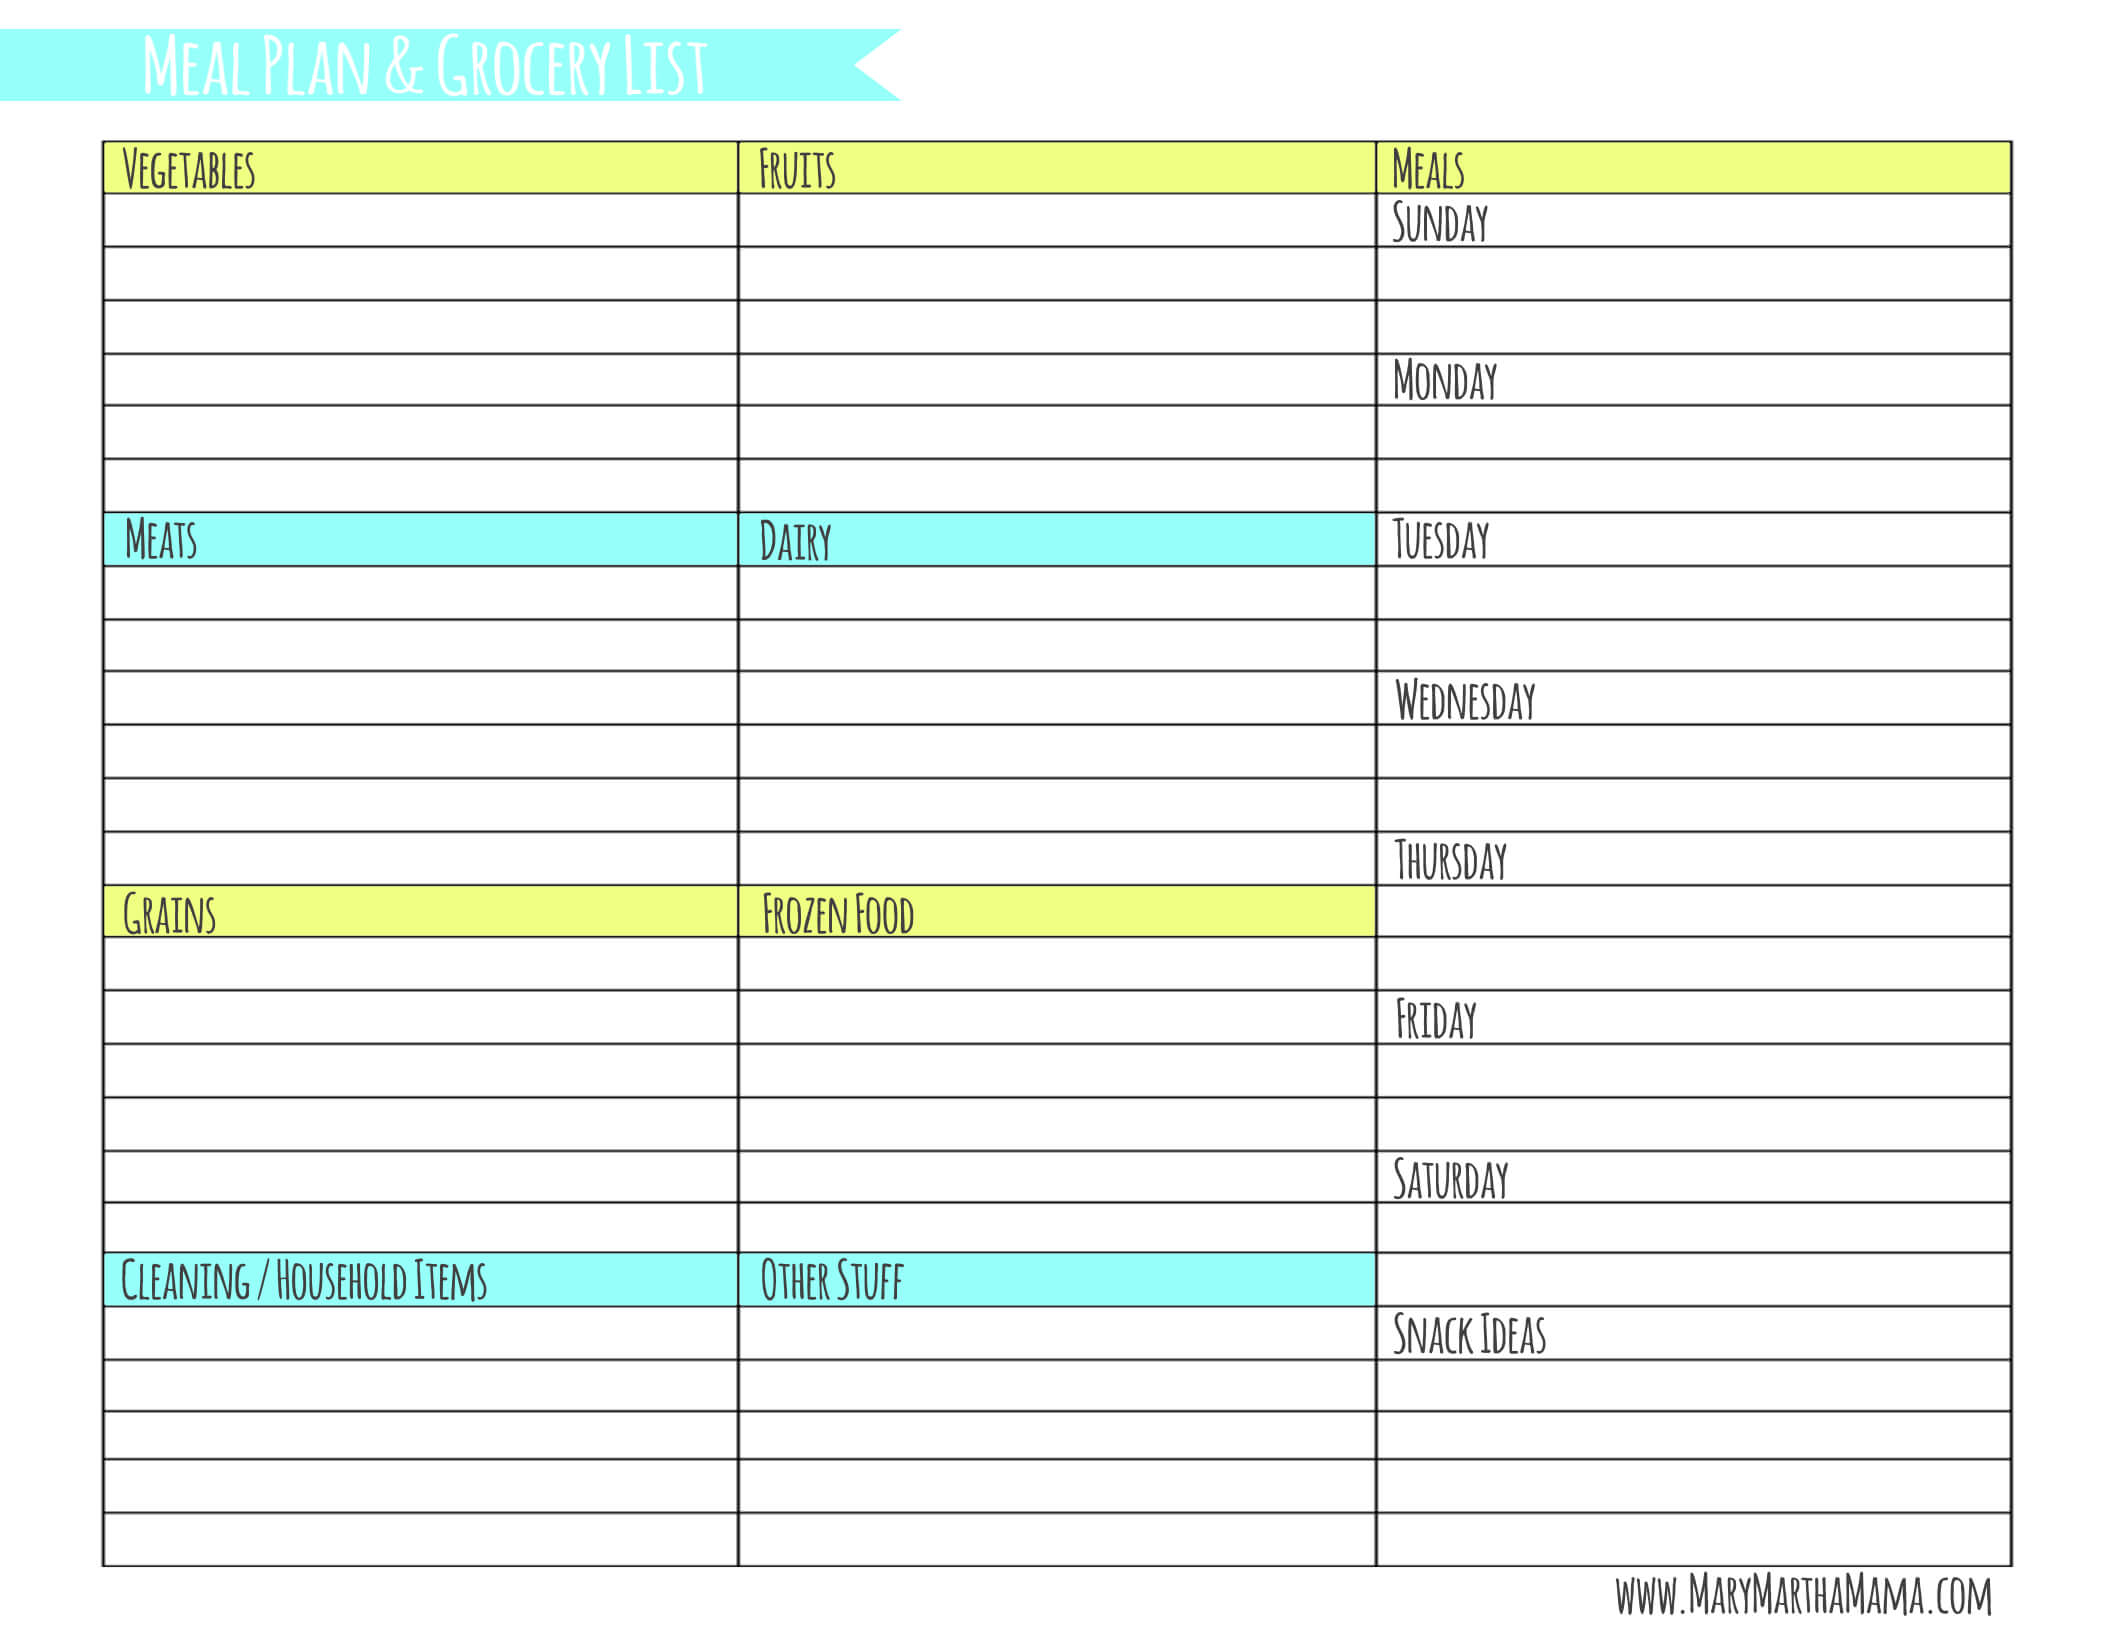 Grocery List Template 002 Ideas Free Meal Planning With Inside Weekly Meal Planner Template Word